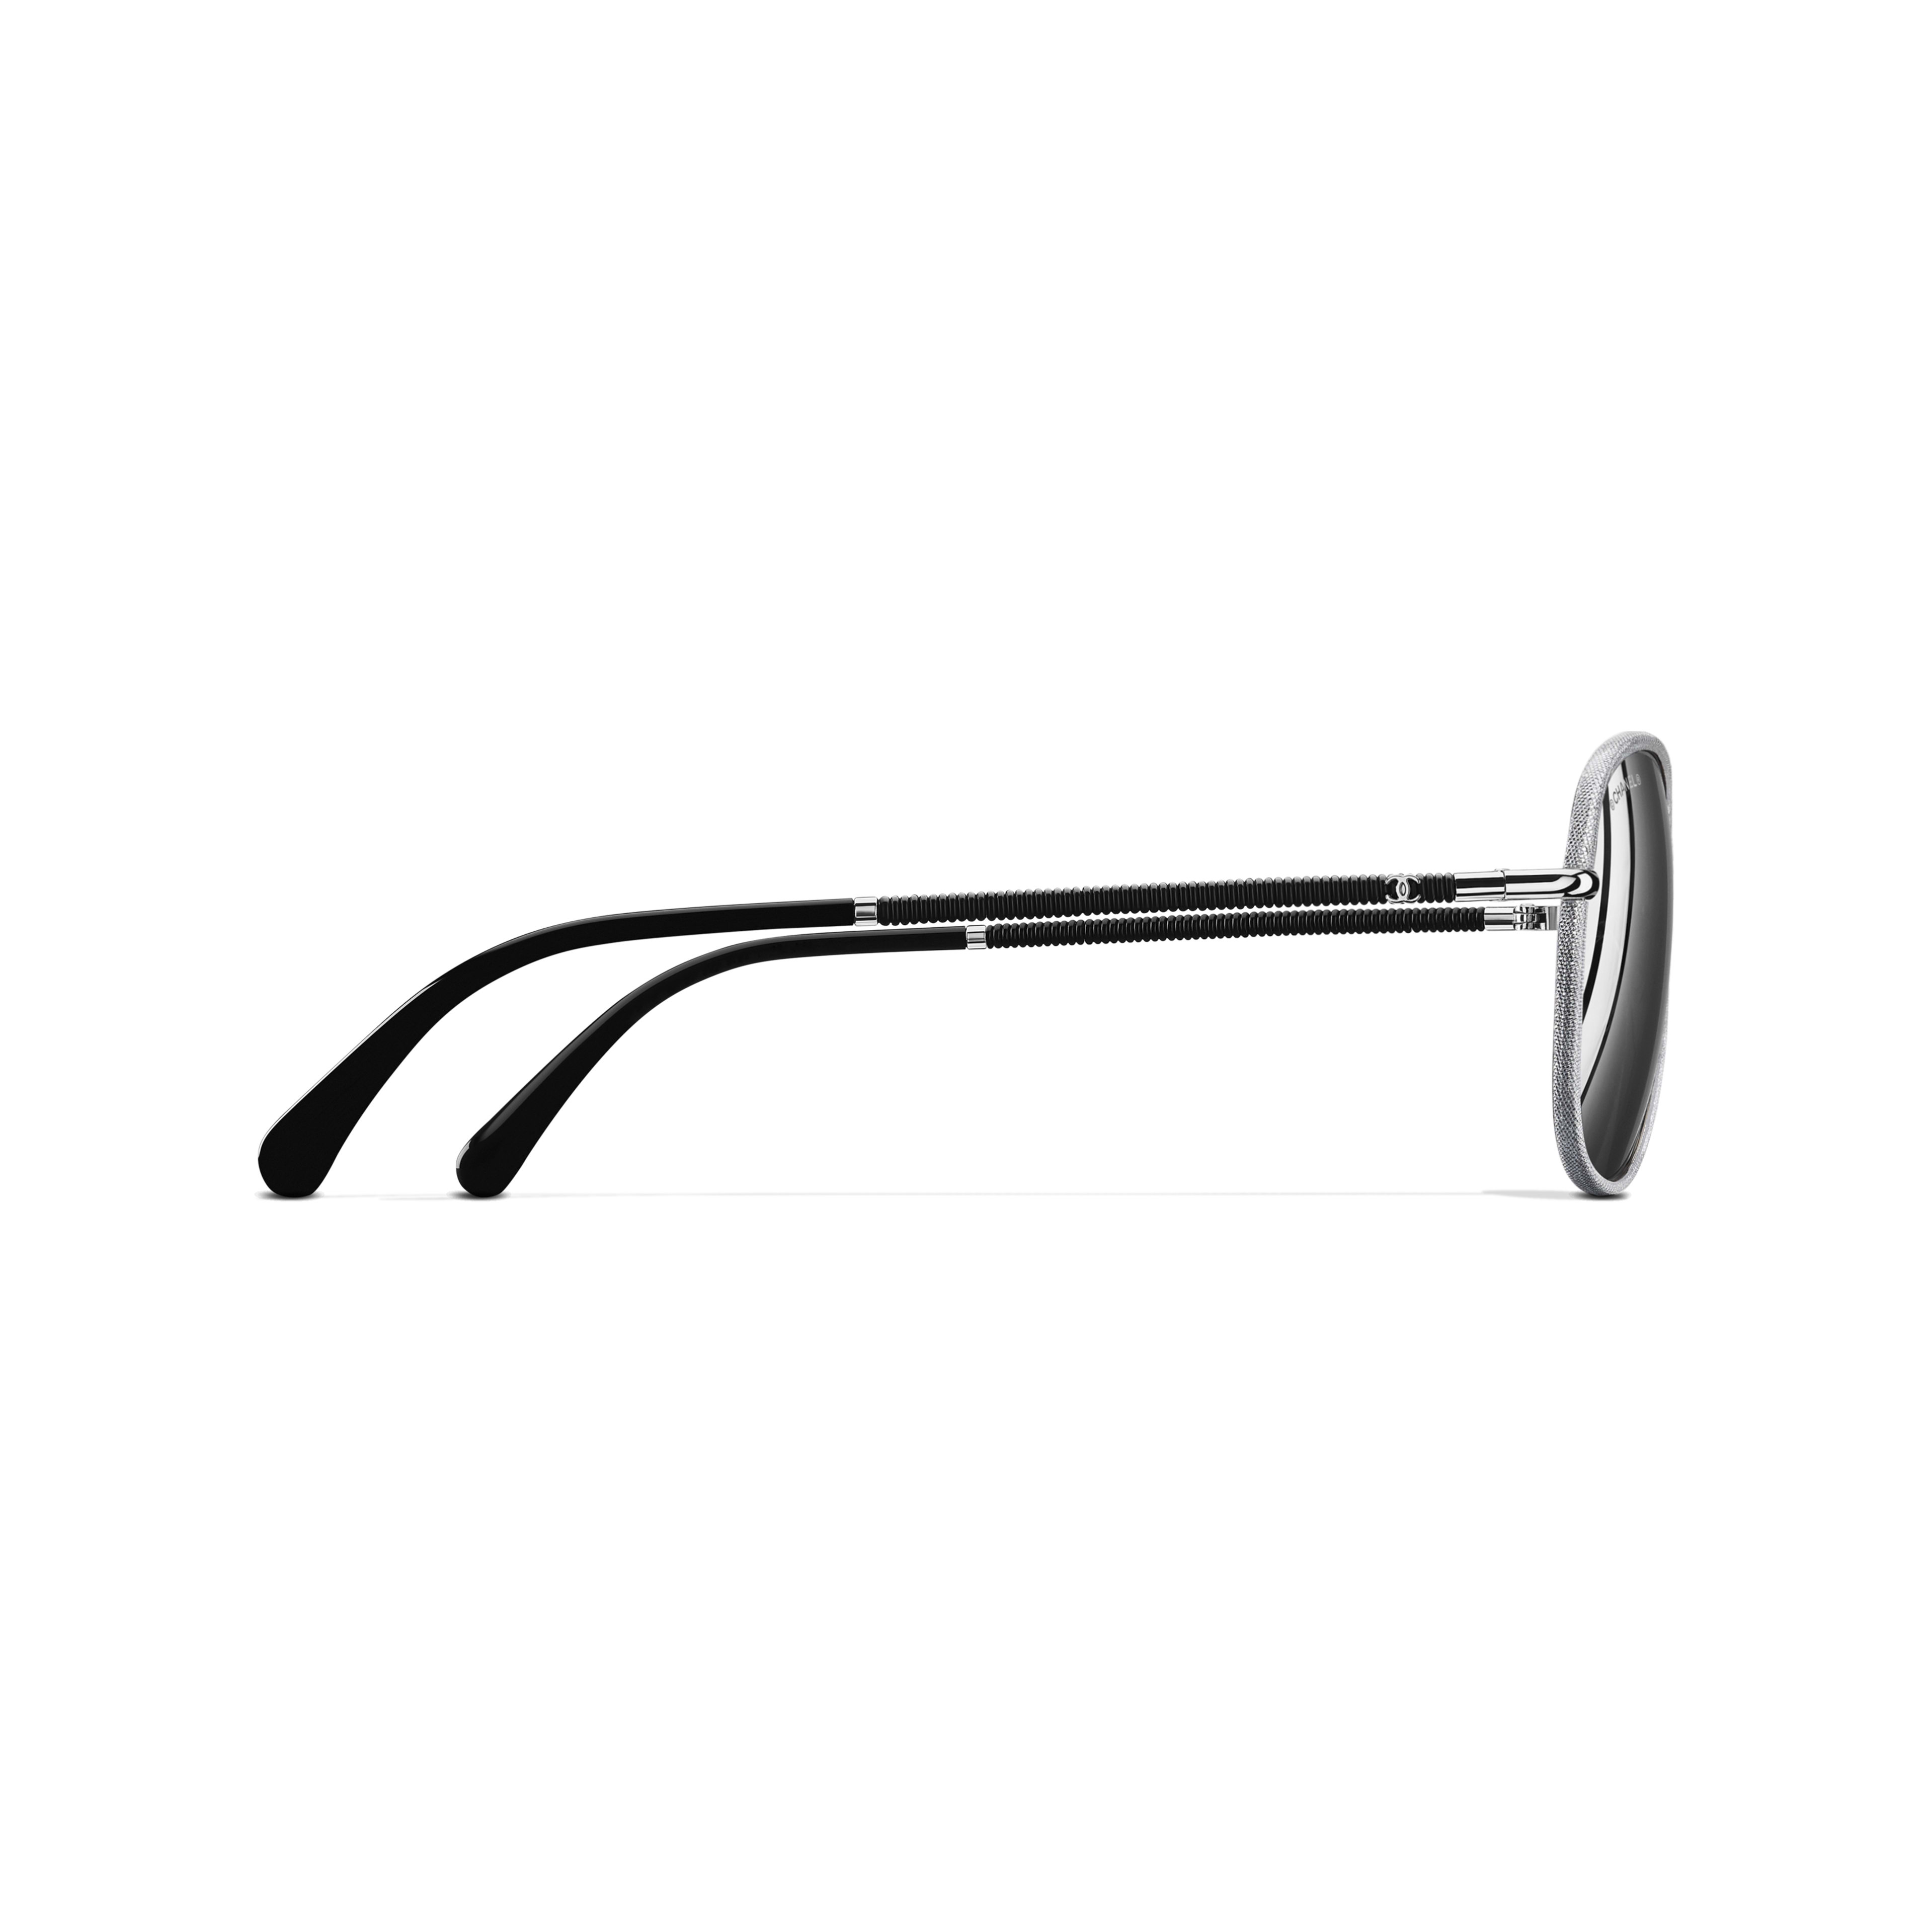 Pilot Sunglasses Metal & Polyester Silver -                                                         view 3 - see full sized version